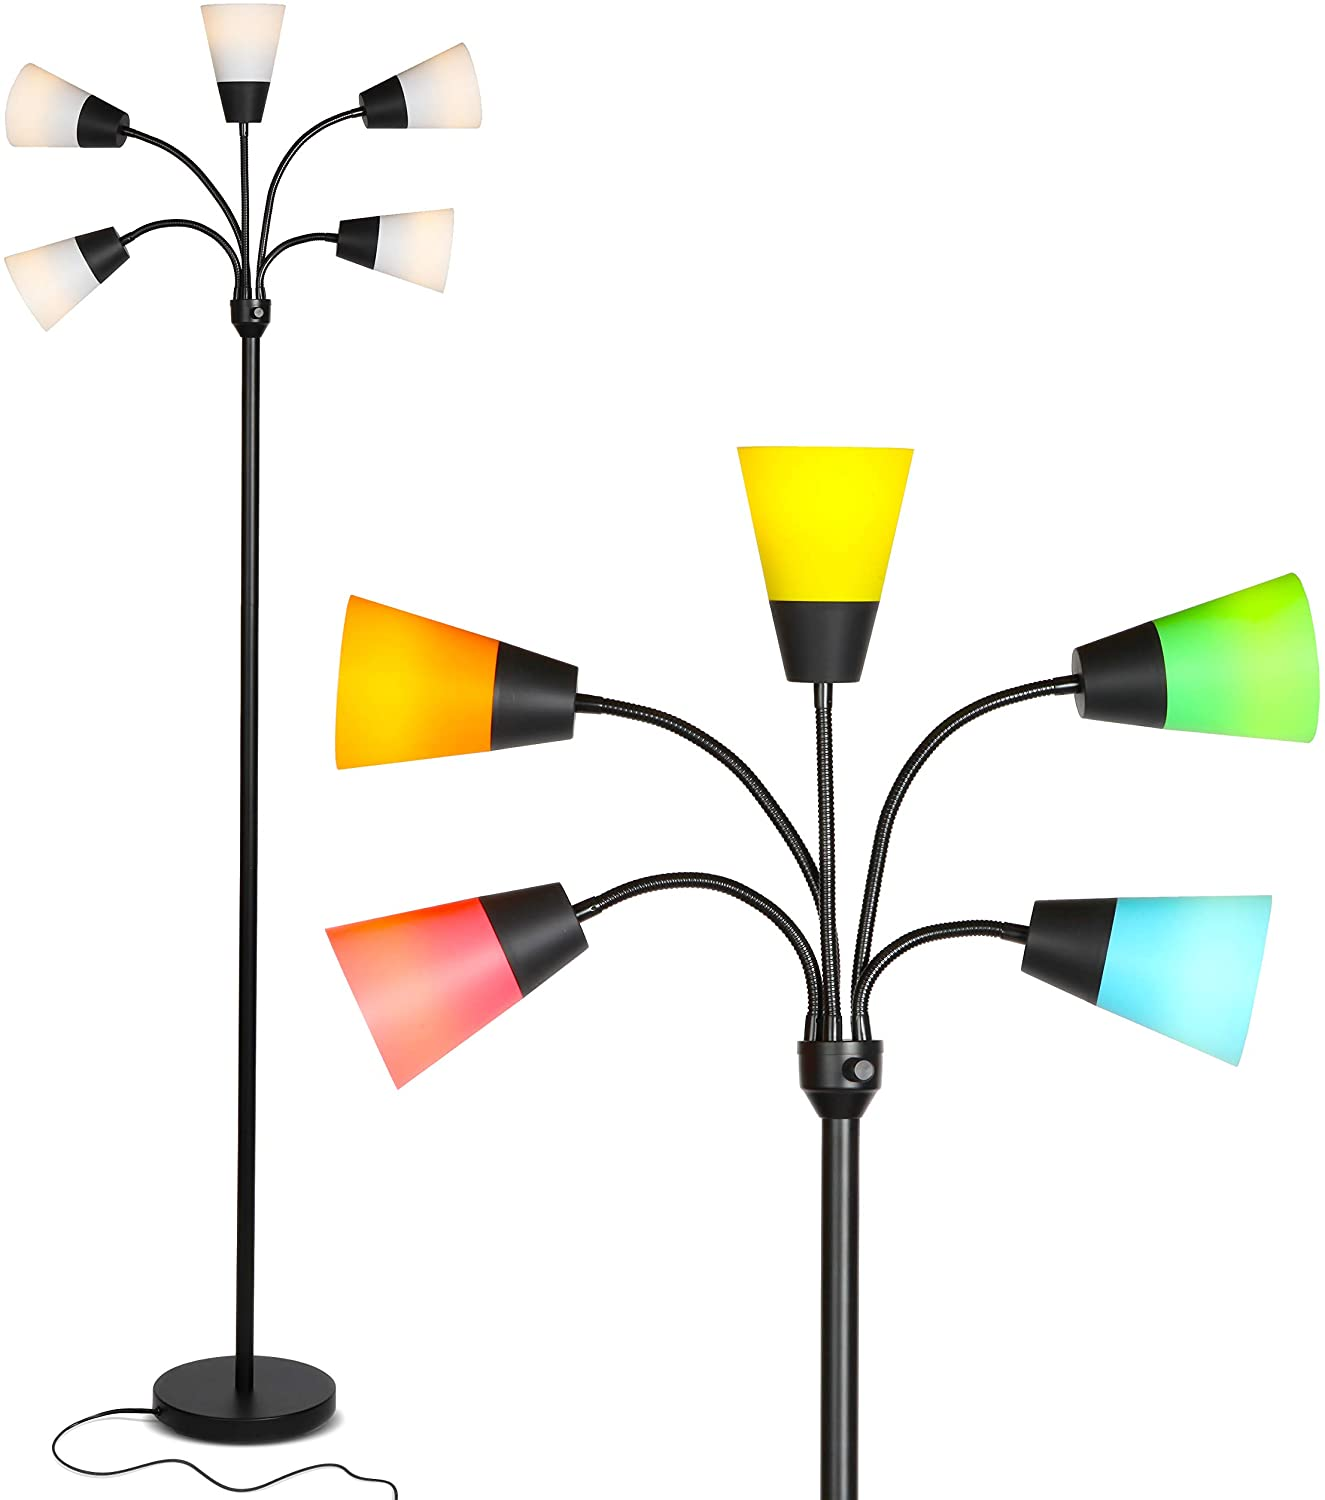 Brightech Medusa Modern LED Floor Lamp – Contemporary Multi Head Standing Reading Lamp for Living Room, Bedroom, Kids Room - Includes 5 LED Bulbs and 5 White & Colored Interchangeable Shades – Black